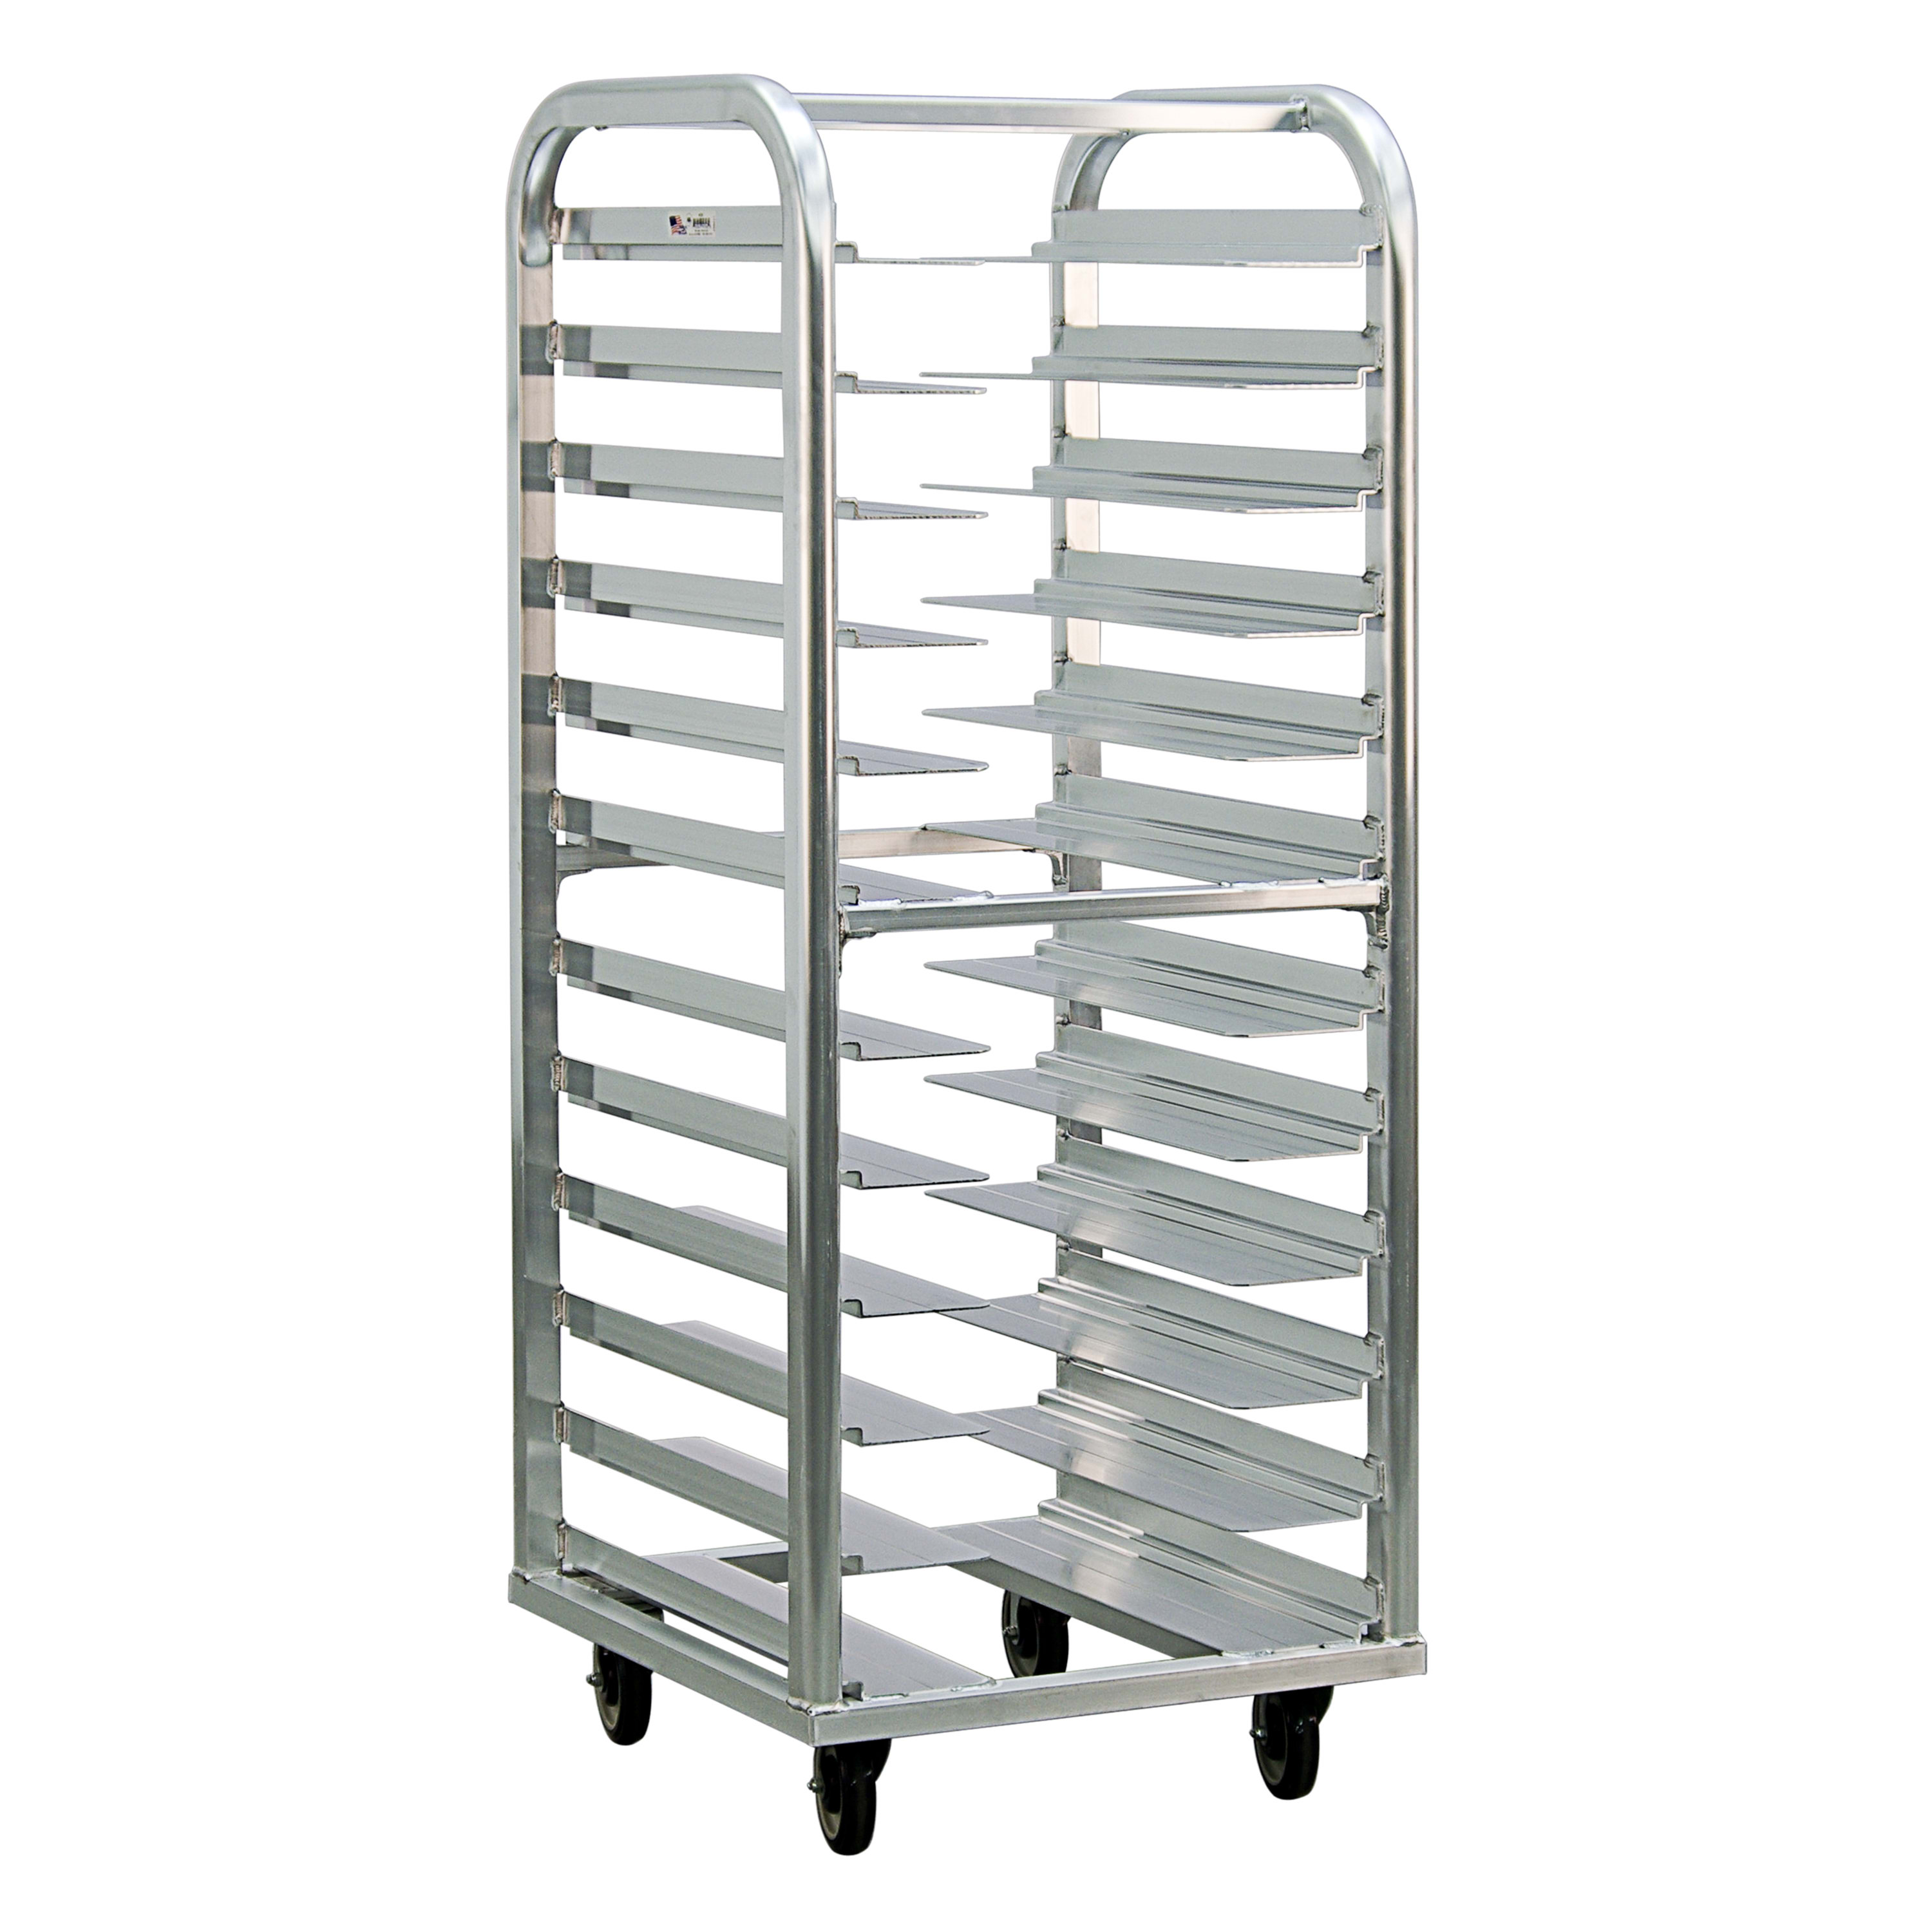 New Age 4635 25W 12-Bun Pan Rack w/ 4.5 Bottom Load Slides